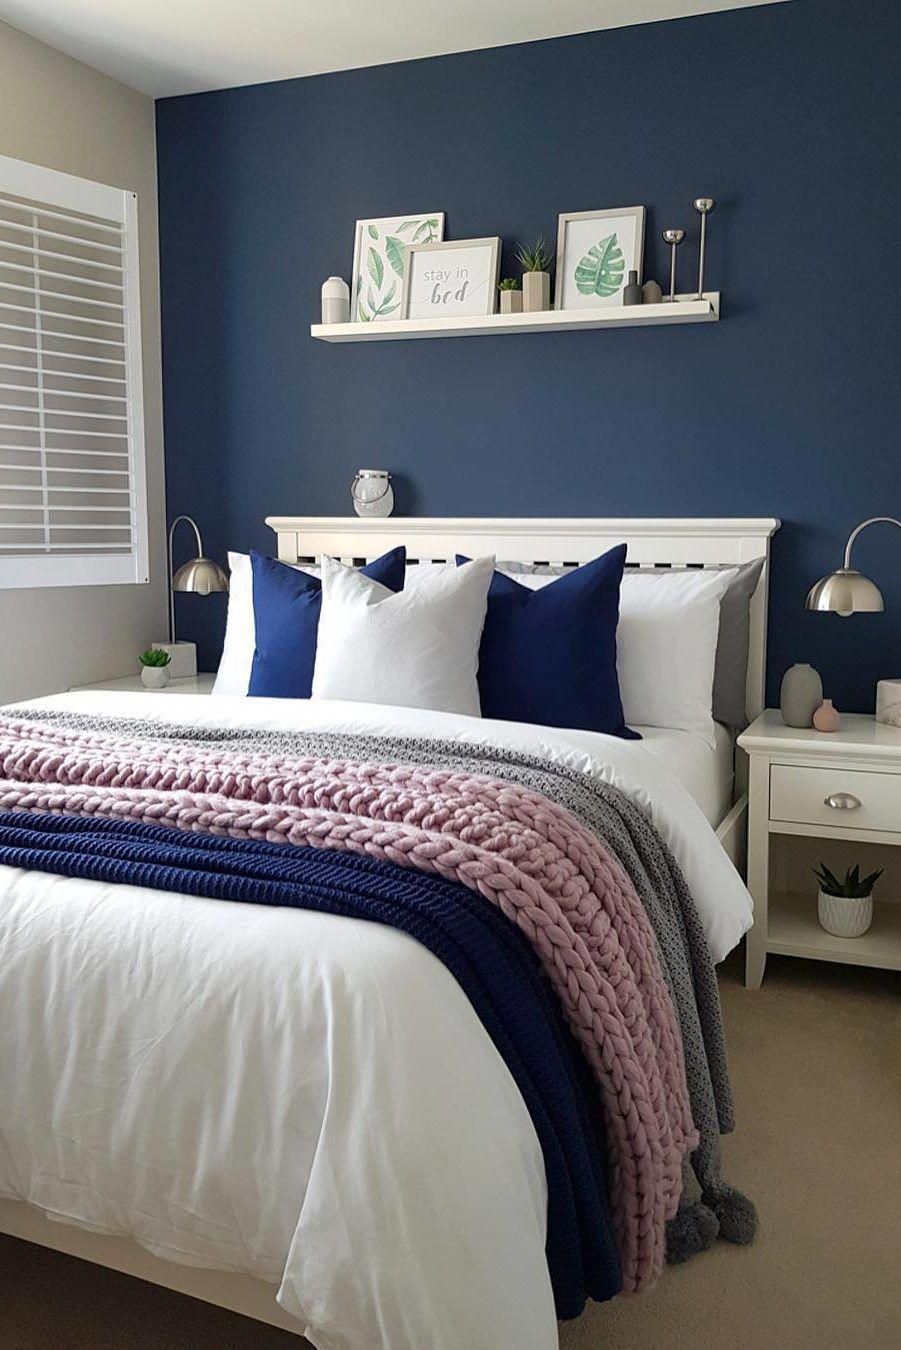 58 Popular And Modern Small Bedroom Design Ideas Page 29 Of 58 Evelyn S World My Dreams My Colors And My Life Bedroom Ideas For Small Rooms Women Woman Bedroom Small Bedroom Bedroom ideas design blue